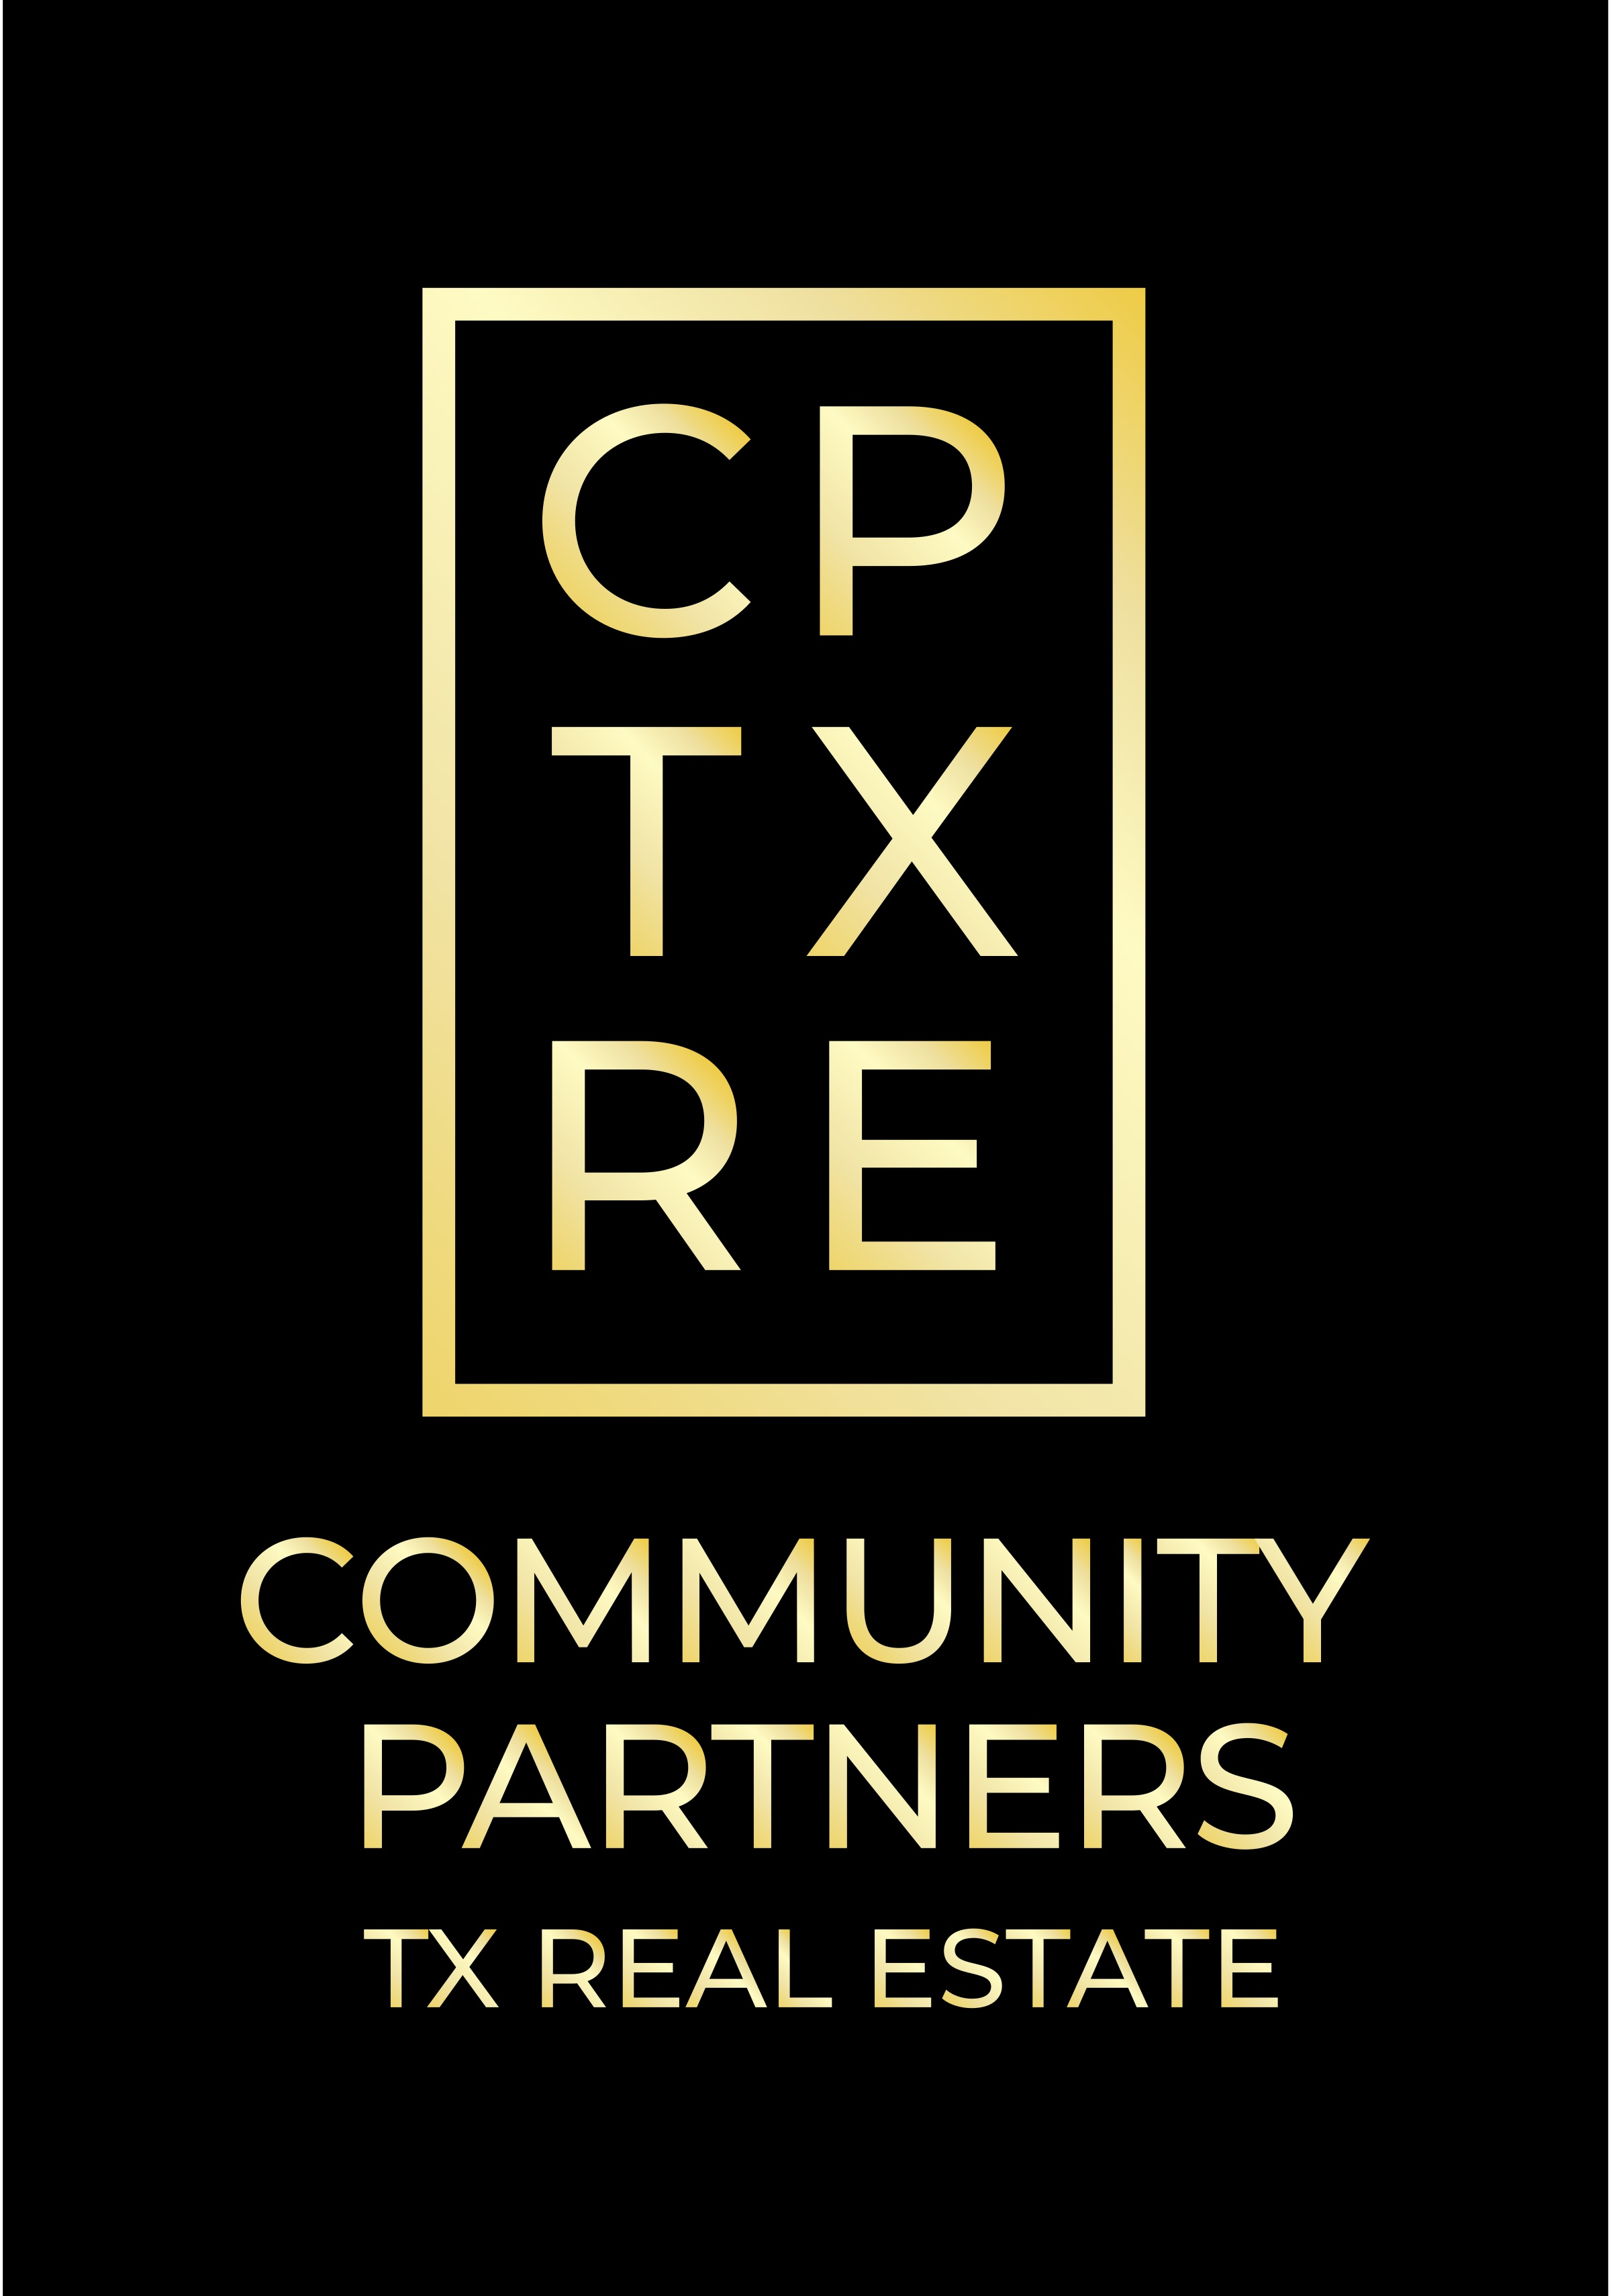 Community Partners TX Real Estate